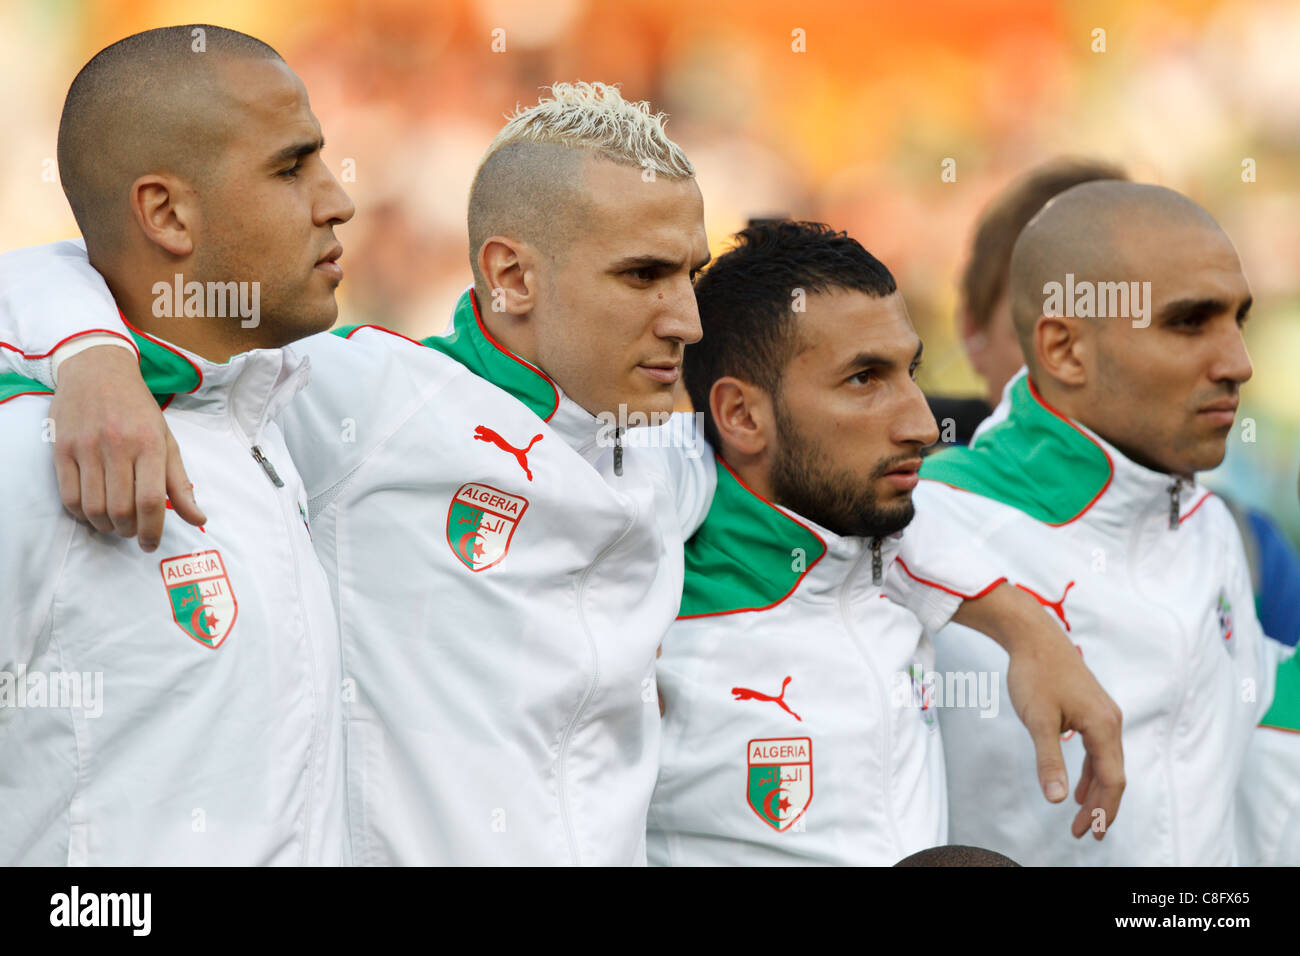 Algeria players line up for team introductions before a 2011 FIFA World Cup Group C match against the United States. - Stock Image